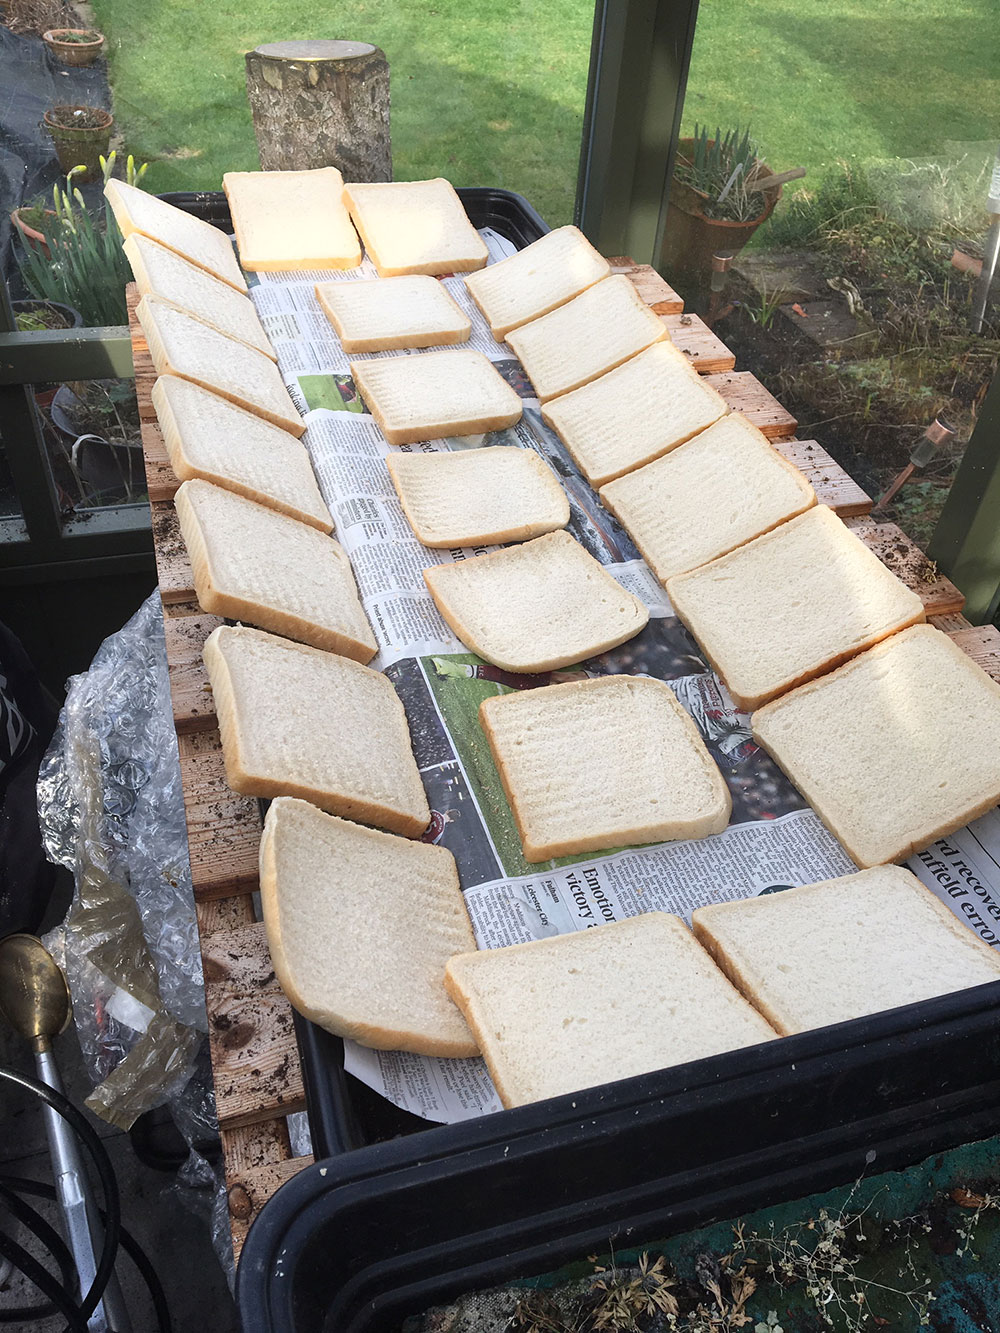 River Float Fishing with Punched Bread: Shhhhh!!! Don't tell Mrs Barnes. Alan likes to dry the bread and make it go stale and he does it by laying out slices on trays in his wife's greenhouse!